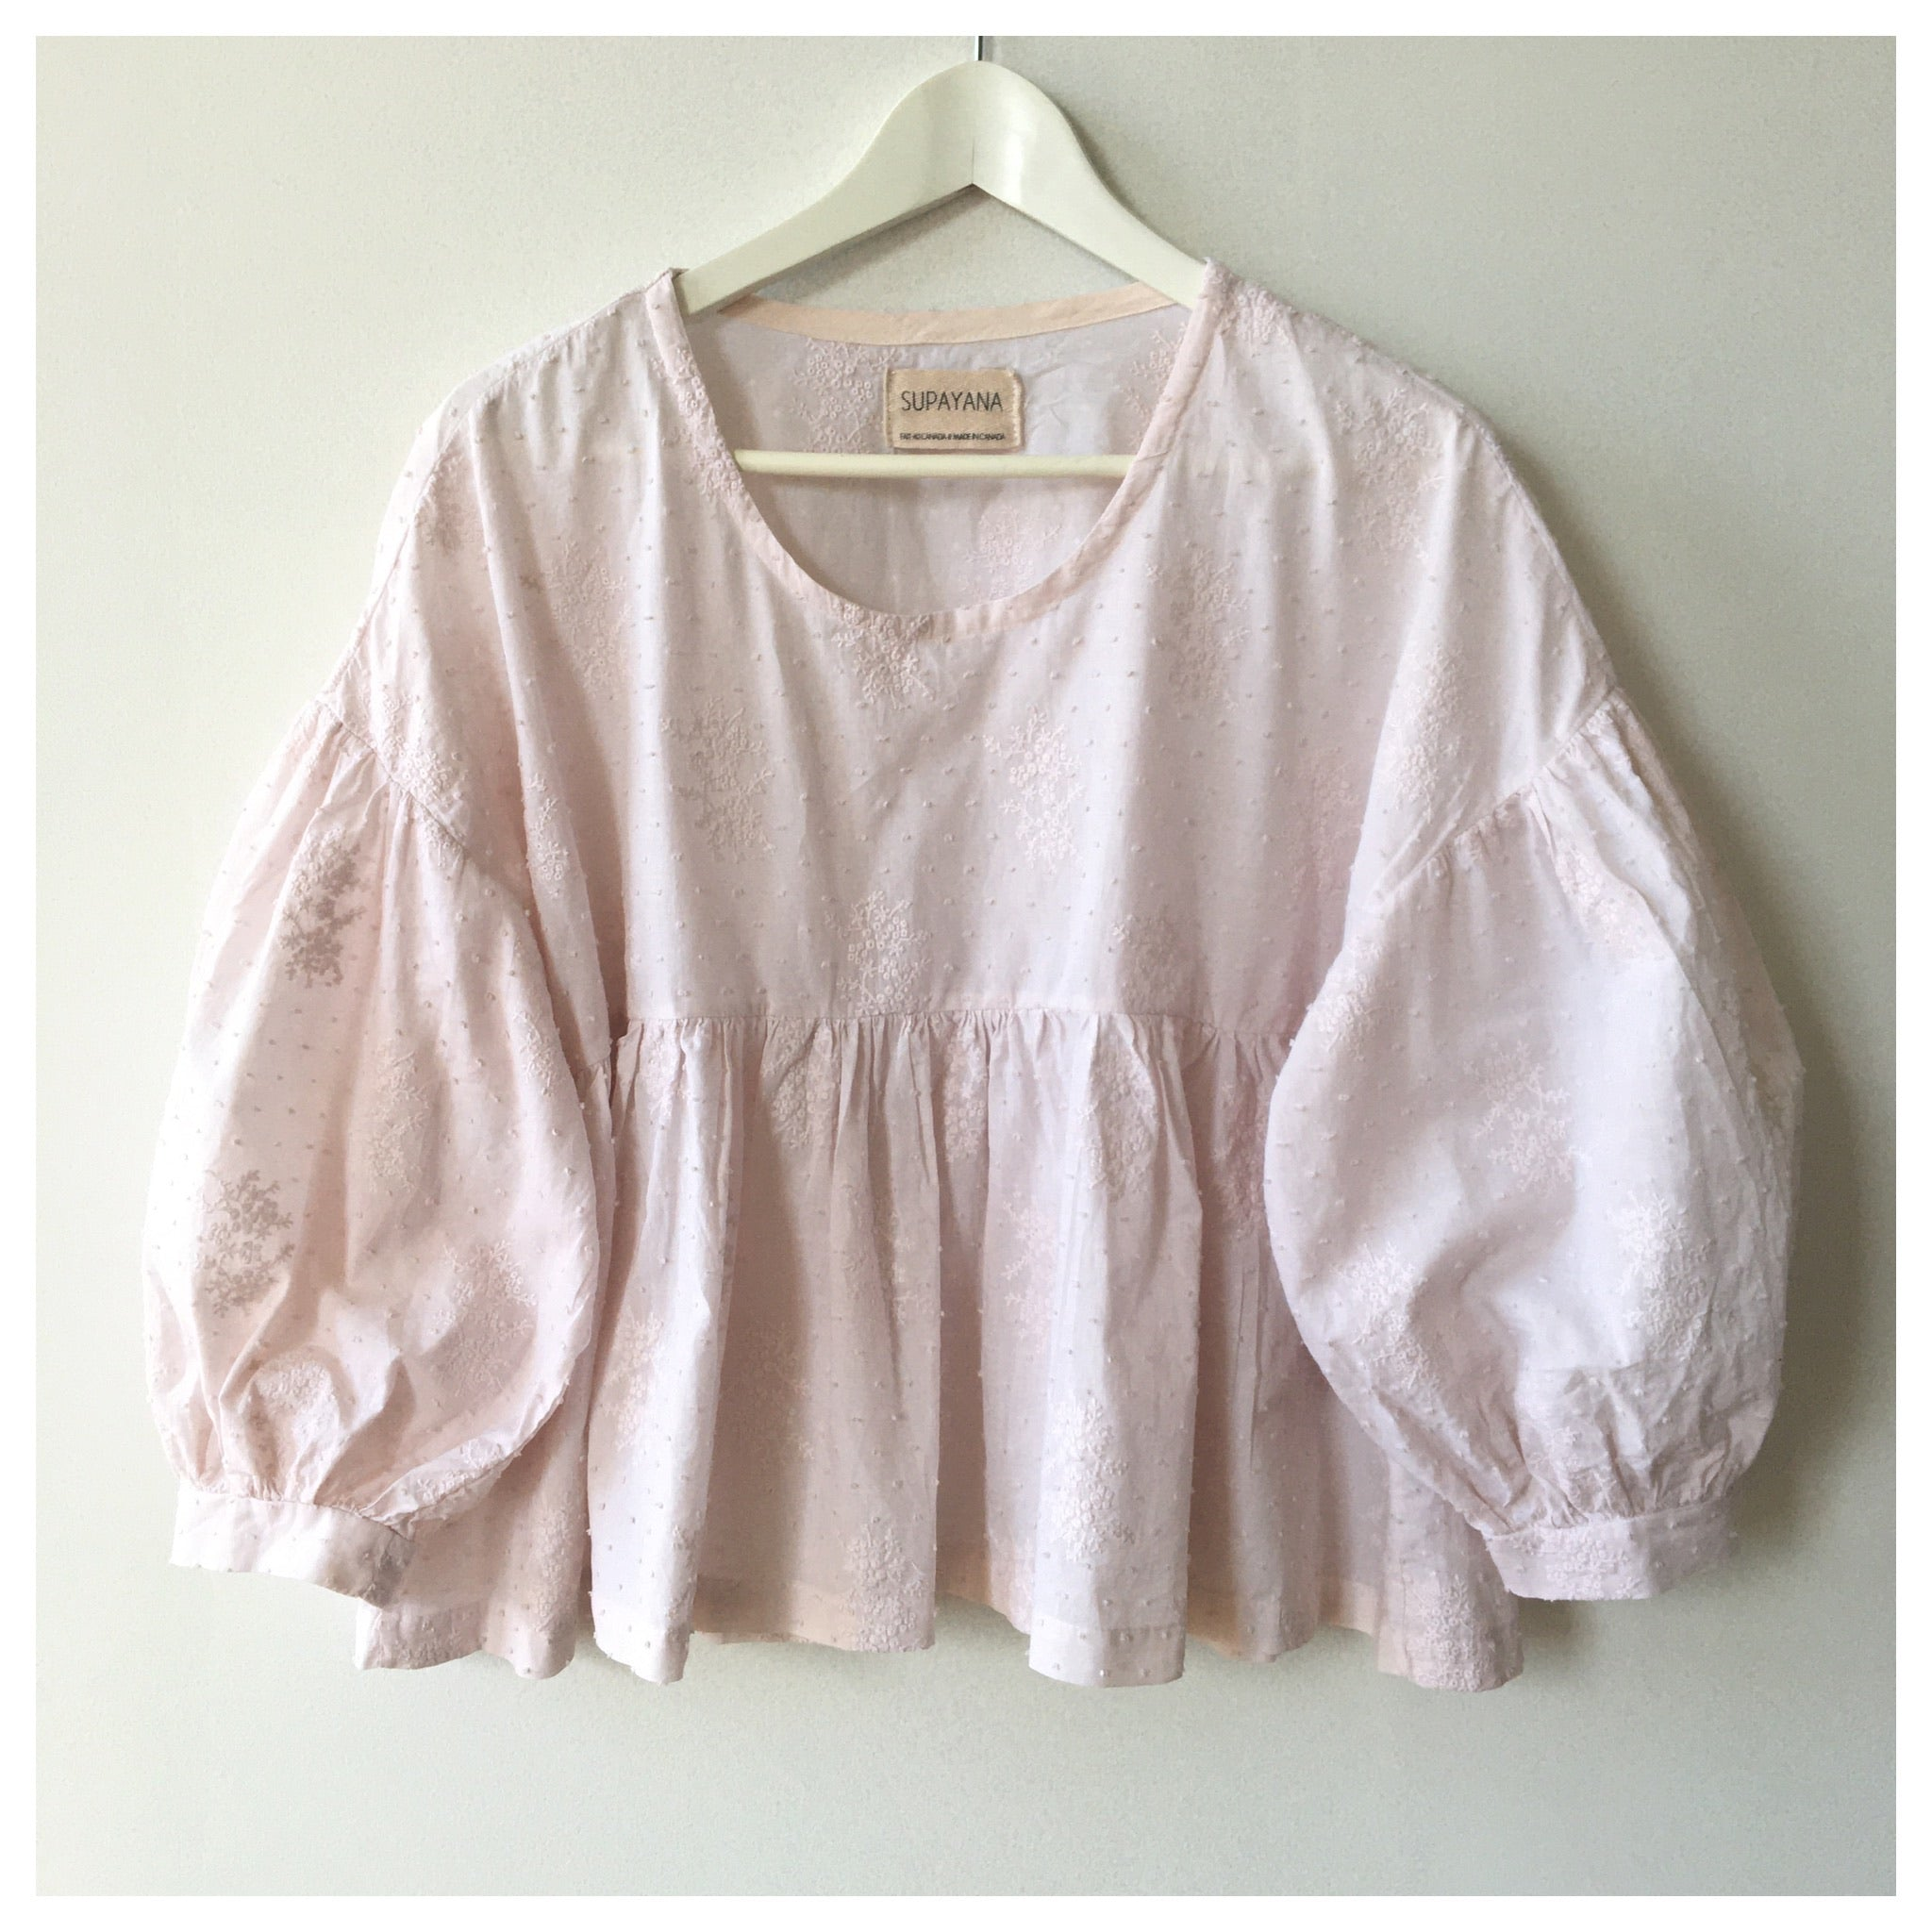 Naturally-dyed puff sleeve top